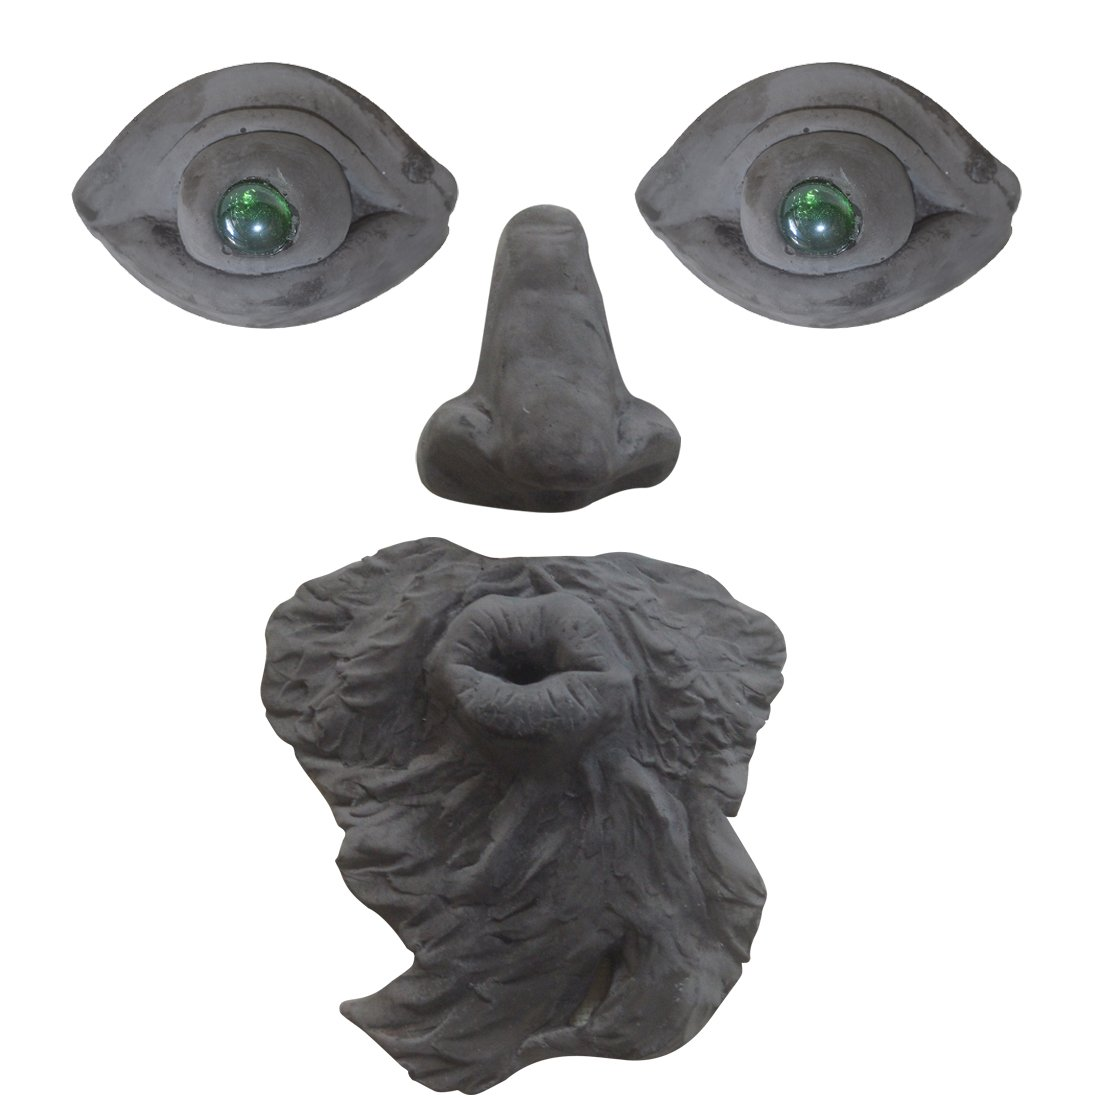 Funny Garden Tree Face Sculpture - Outdoor Yard Art Tree Tank Beard Green Glass Eyes Face Statue Decoration - Home Ornament Xmas Decor Gift